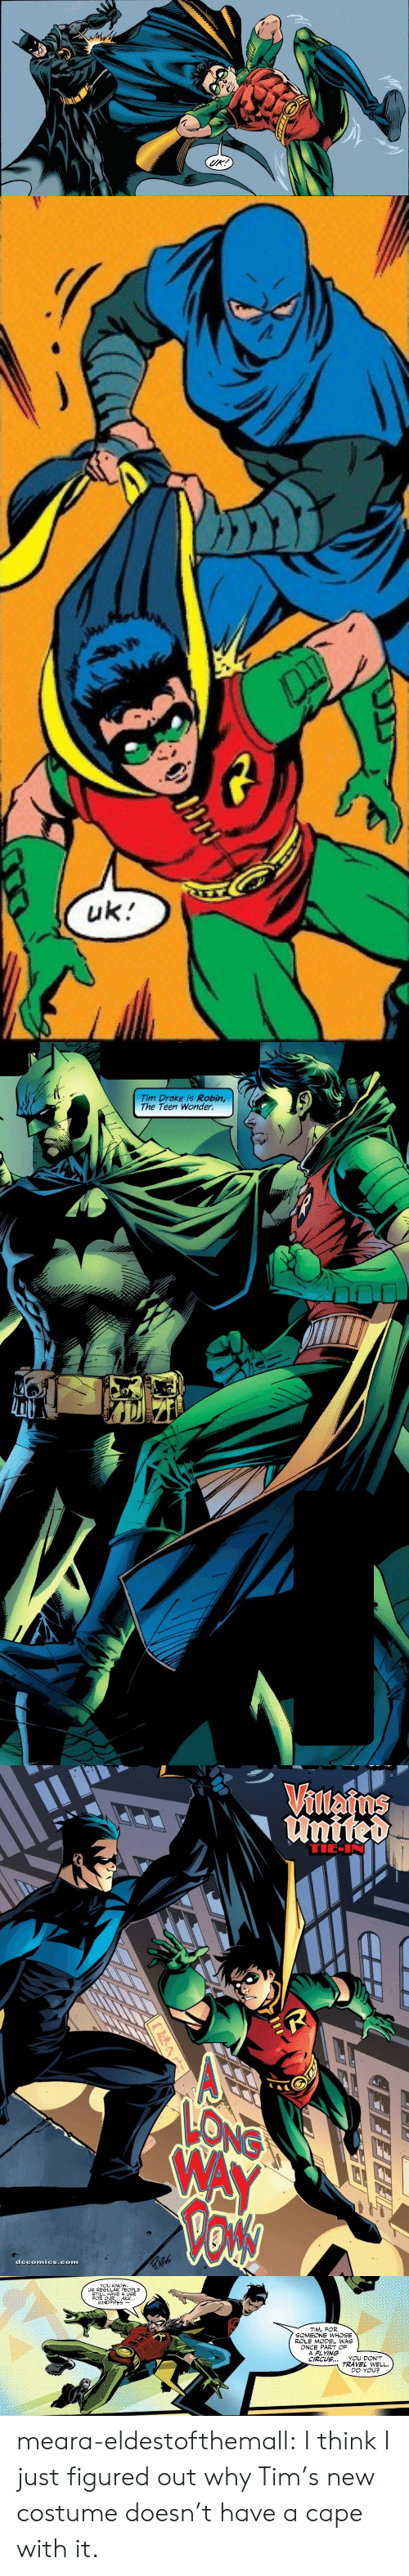 Drake, Target, and Tumblr: UK!   uk   Tim Drake is Robin,  The Teen Wonder.   Vilafns  united  TIE-I  LIITTTT  LONG  WAY  Vo'N  WARS  dccomics.com   YOU KNOW  US REGULAR PEOPLE  STILL HAVE A USE  FOR OUR... AKK...  WINDPIPES--  TIM, FOR  SOMEONE WHOSE  ROLE MODEL WAS  ONCE PART OF  A FLYING  CIRCUS...  YOU DON'T  TRAVEL WELL  DO YOU? meara-eldestofthemall: I think I just figured out why Tim's new costume doesn't have a cape with it.